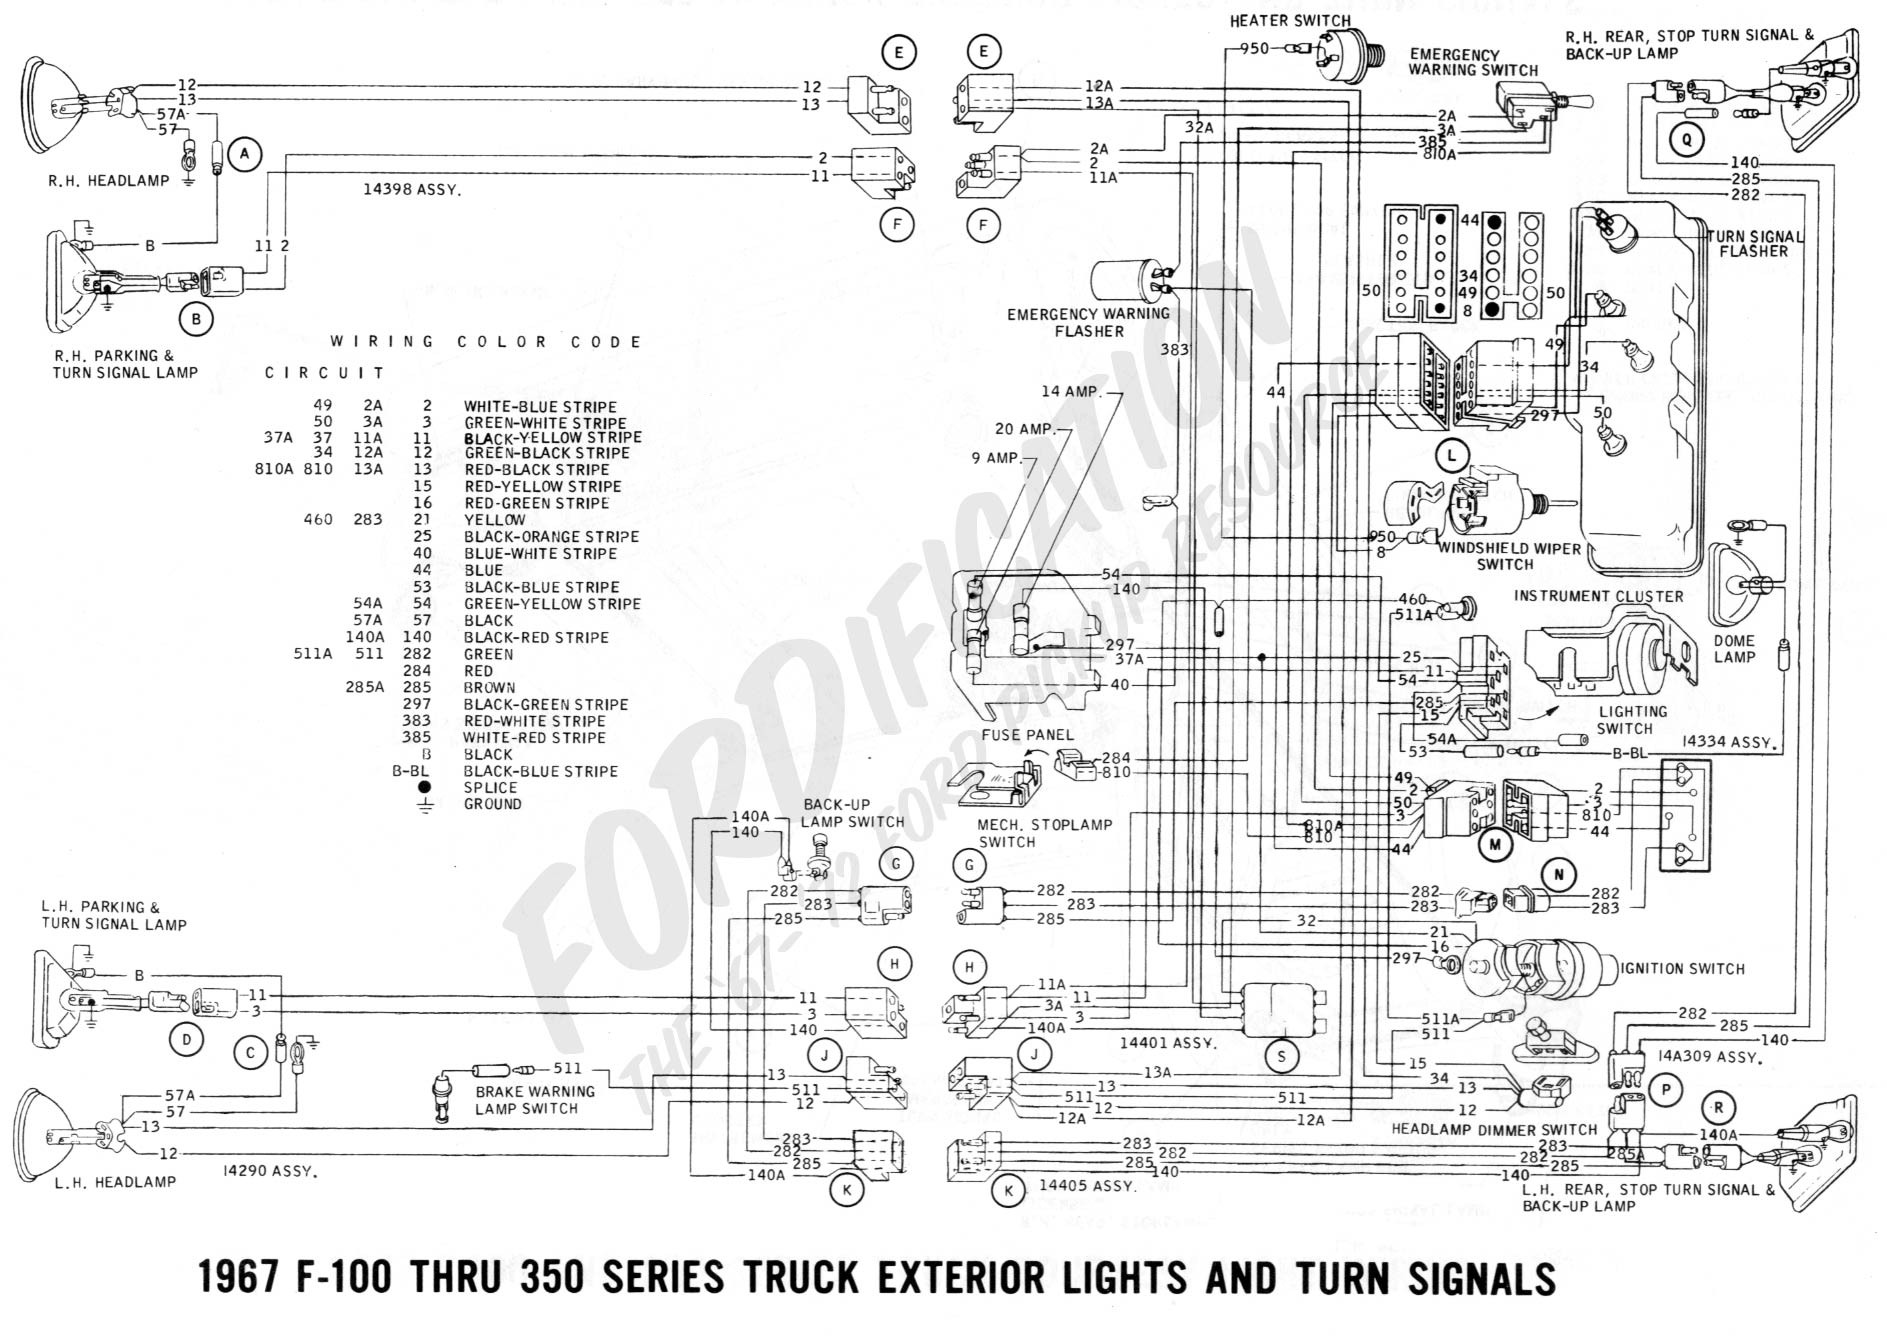 1968 Ford F 250 Wiring Diagram Get Wiring Diagram Sample 2005 Ford Excursion Horn Wire Diagram 68 Ford Truck Horn Wire Diagram